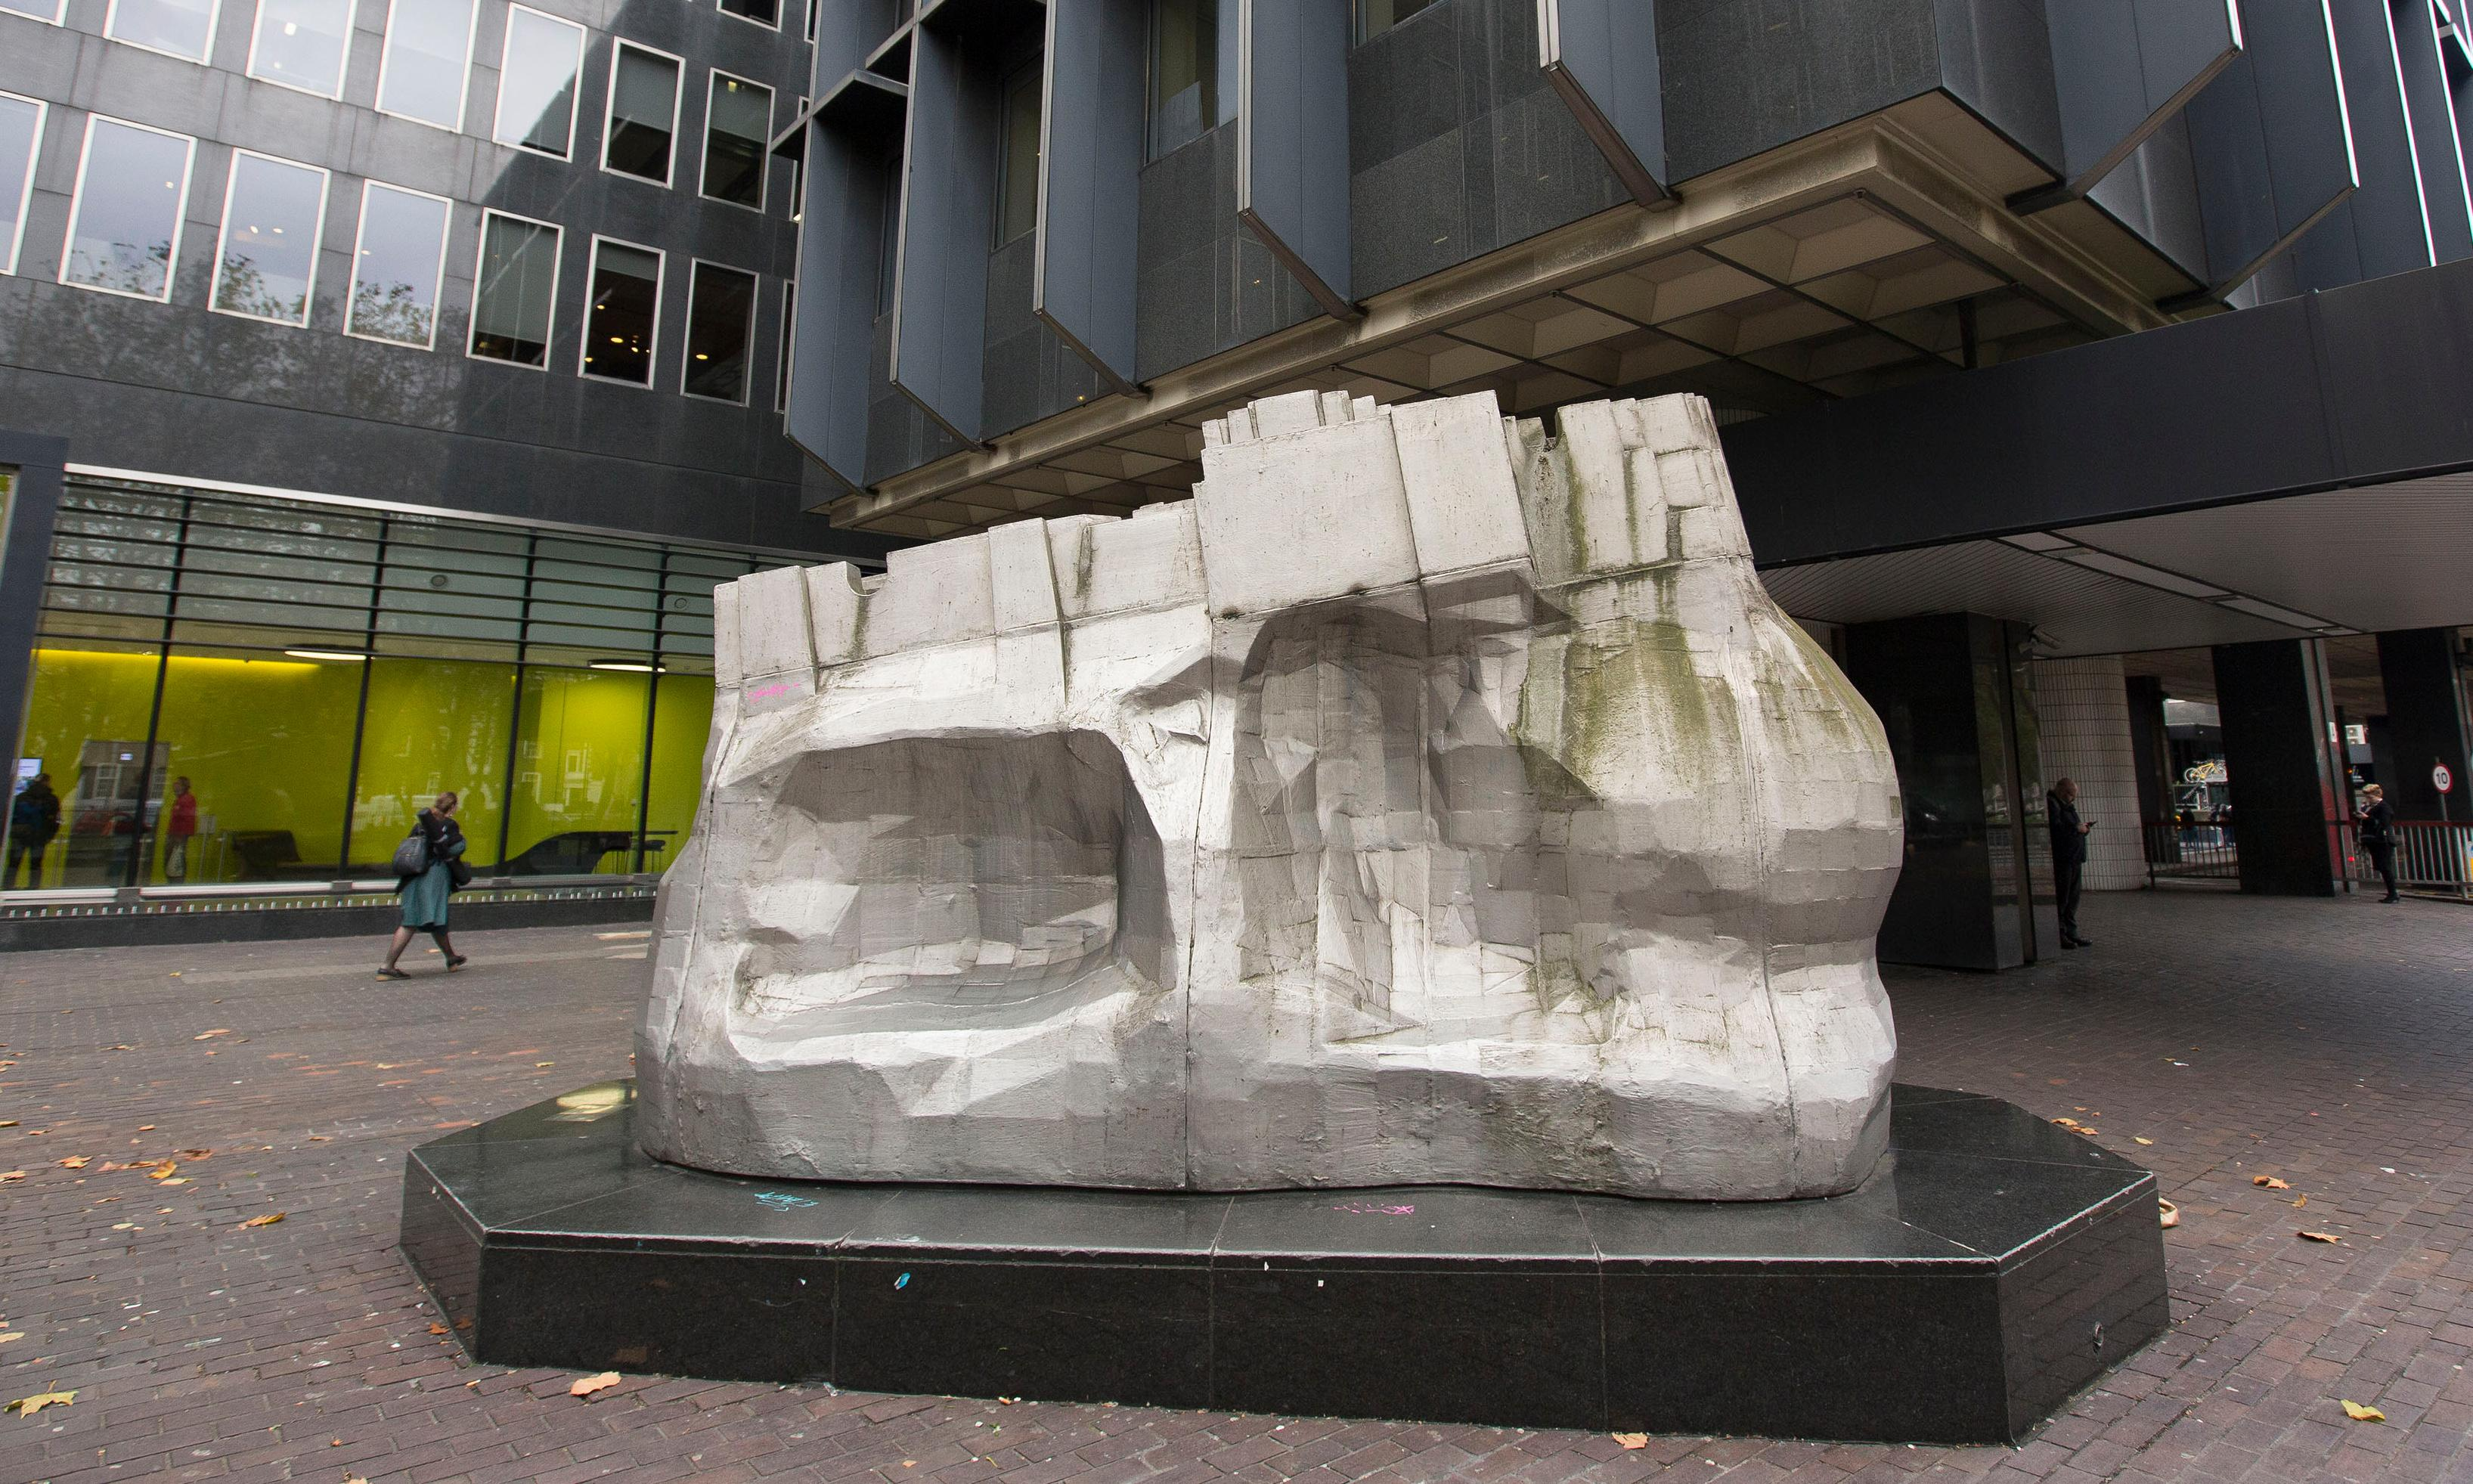 Arts body criticised for leaving Paolozzi sculpture on Euston building site